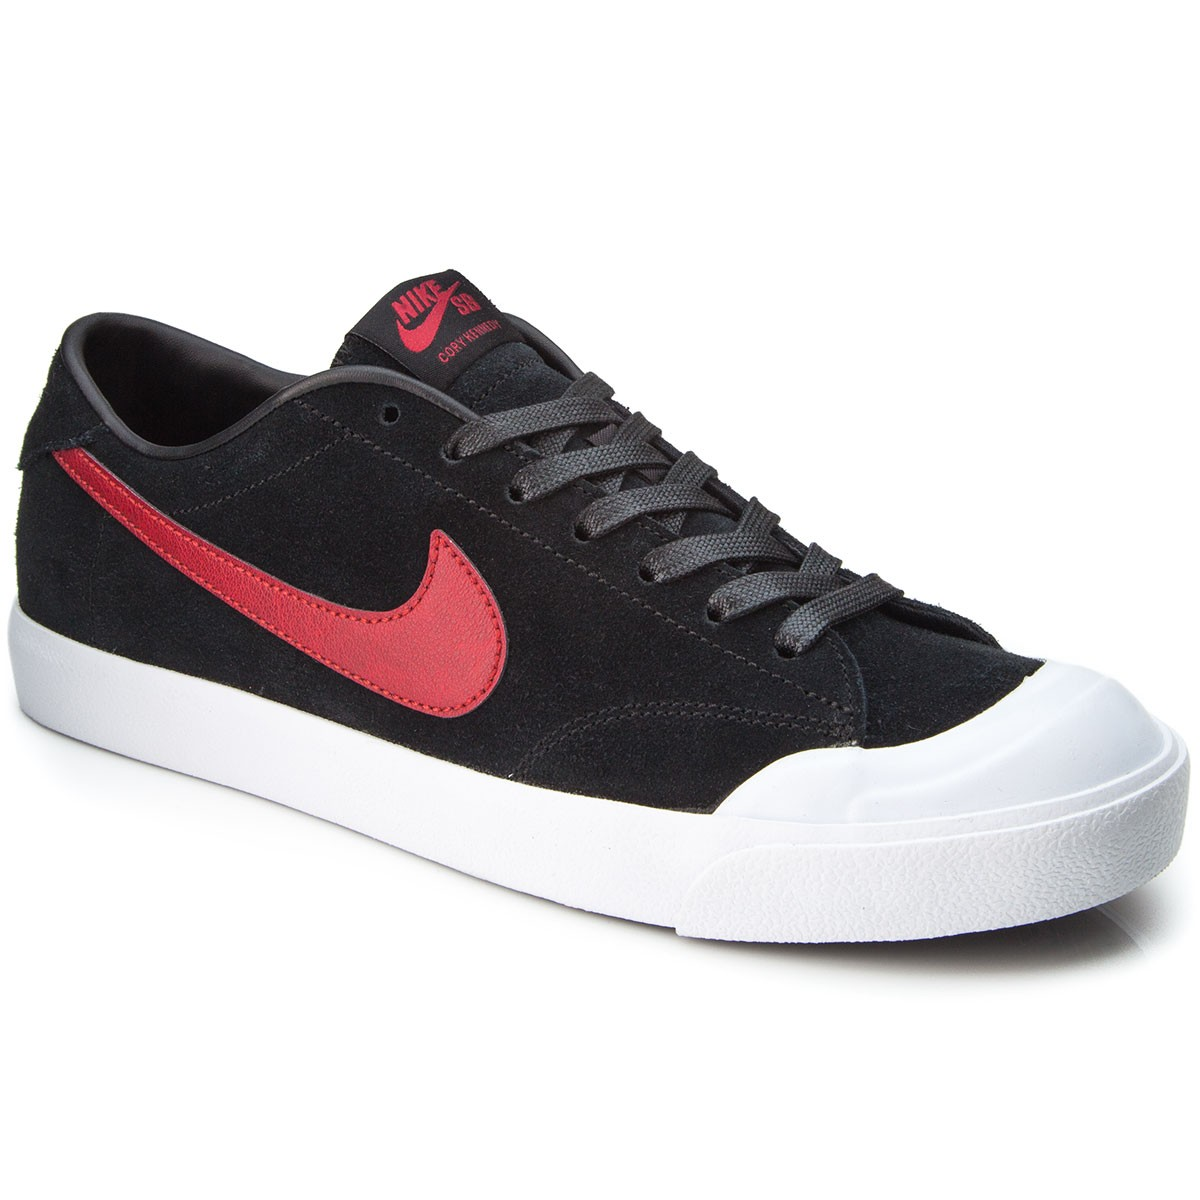 97dbf9cefca3c7 nike-zoom-all-court-ck-shoes-black-white-red-1.1506664428.jpg